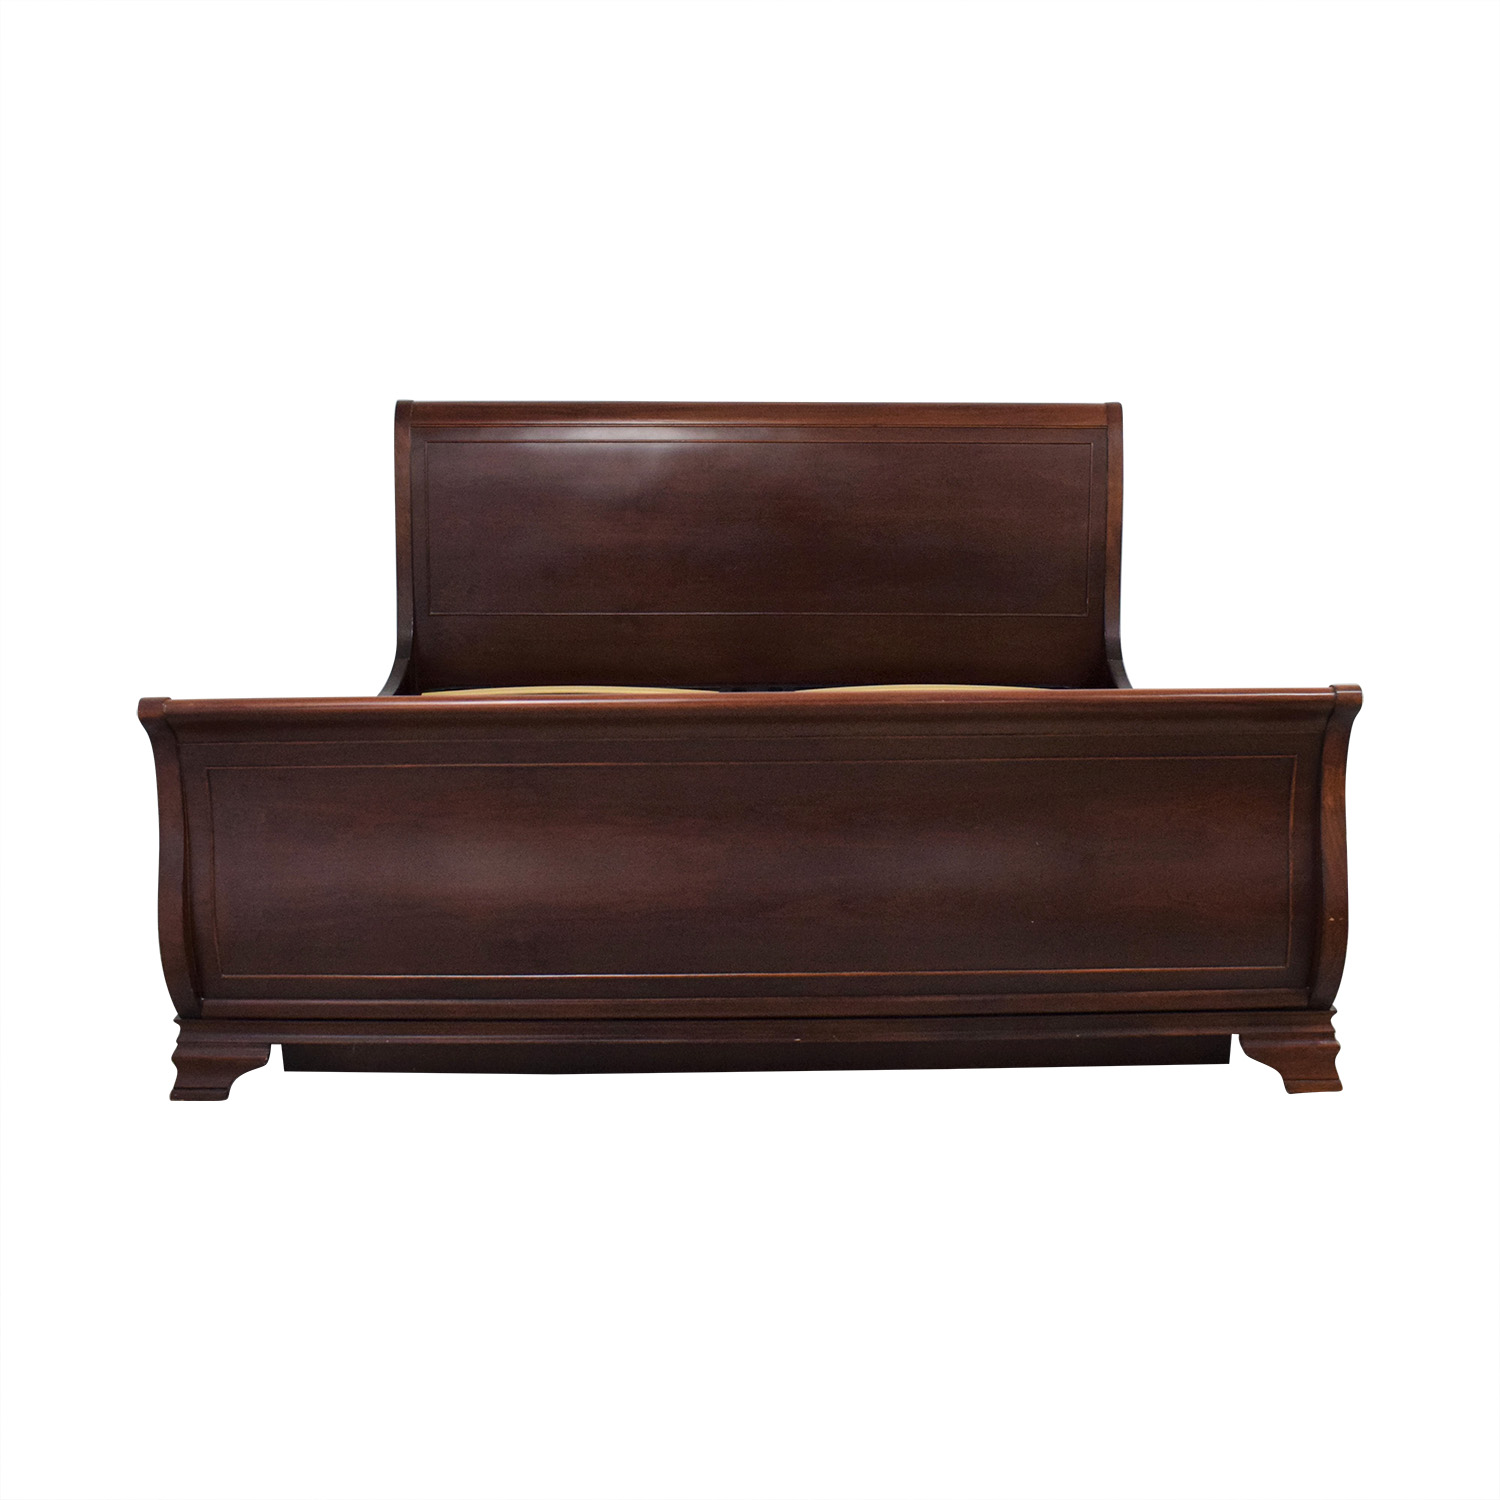 Broyhill Furniture Broyhill Furniture Sleigh King Bed Frame dark brown